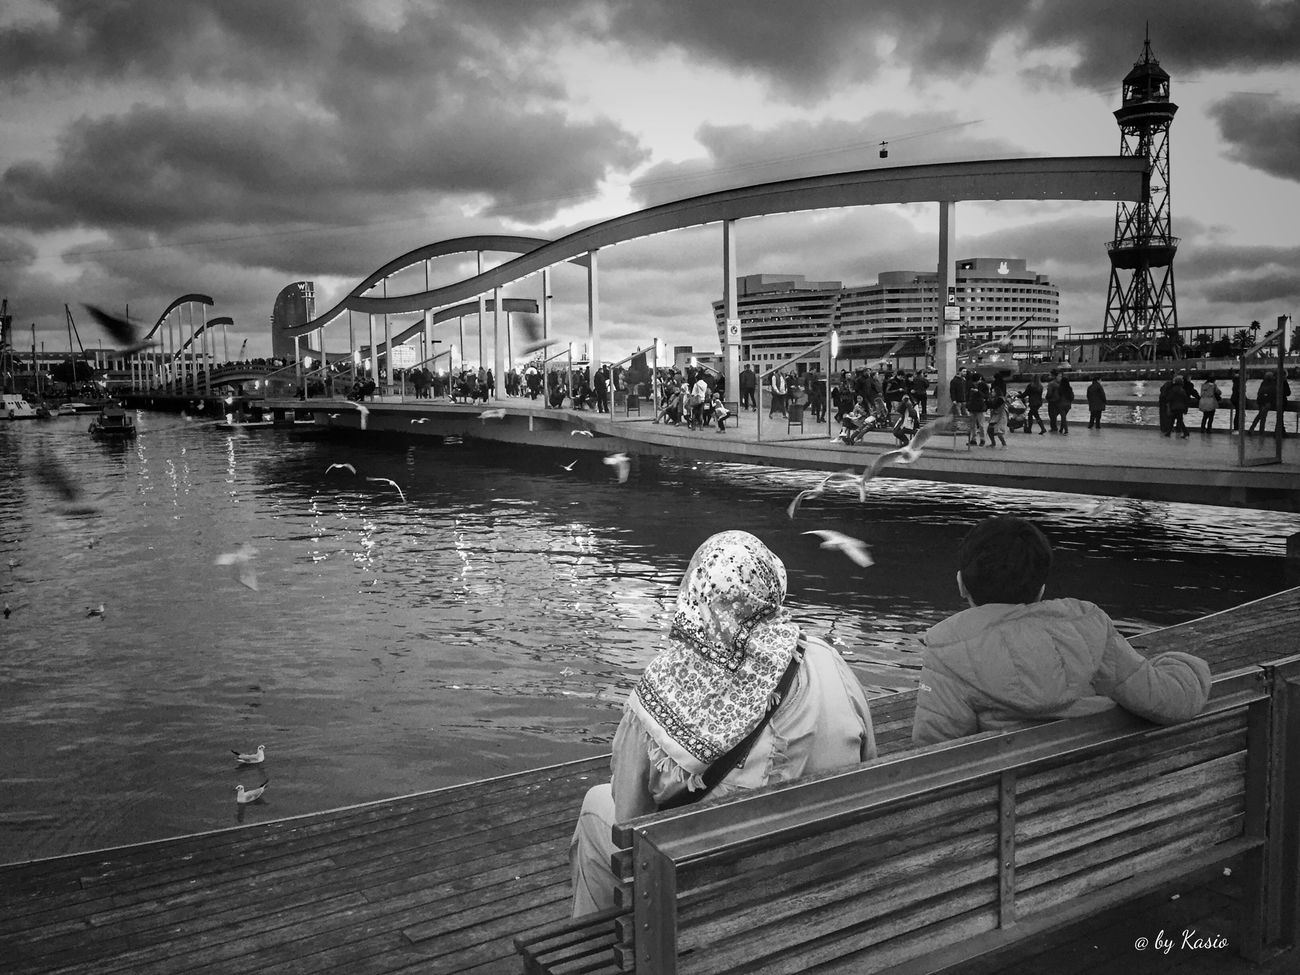 Tourist Architecture Built Structure Water Tourism City Nautical Vessel Outdoors Bridge - Man Made Structure Building Exterior City Life EyeEm Best Edits EyeEm Best Shots City Street Capture The Moment Eye4photography  Bw Photography BW Collection